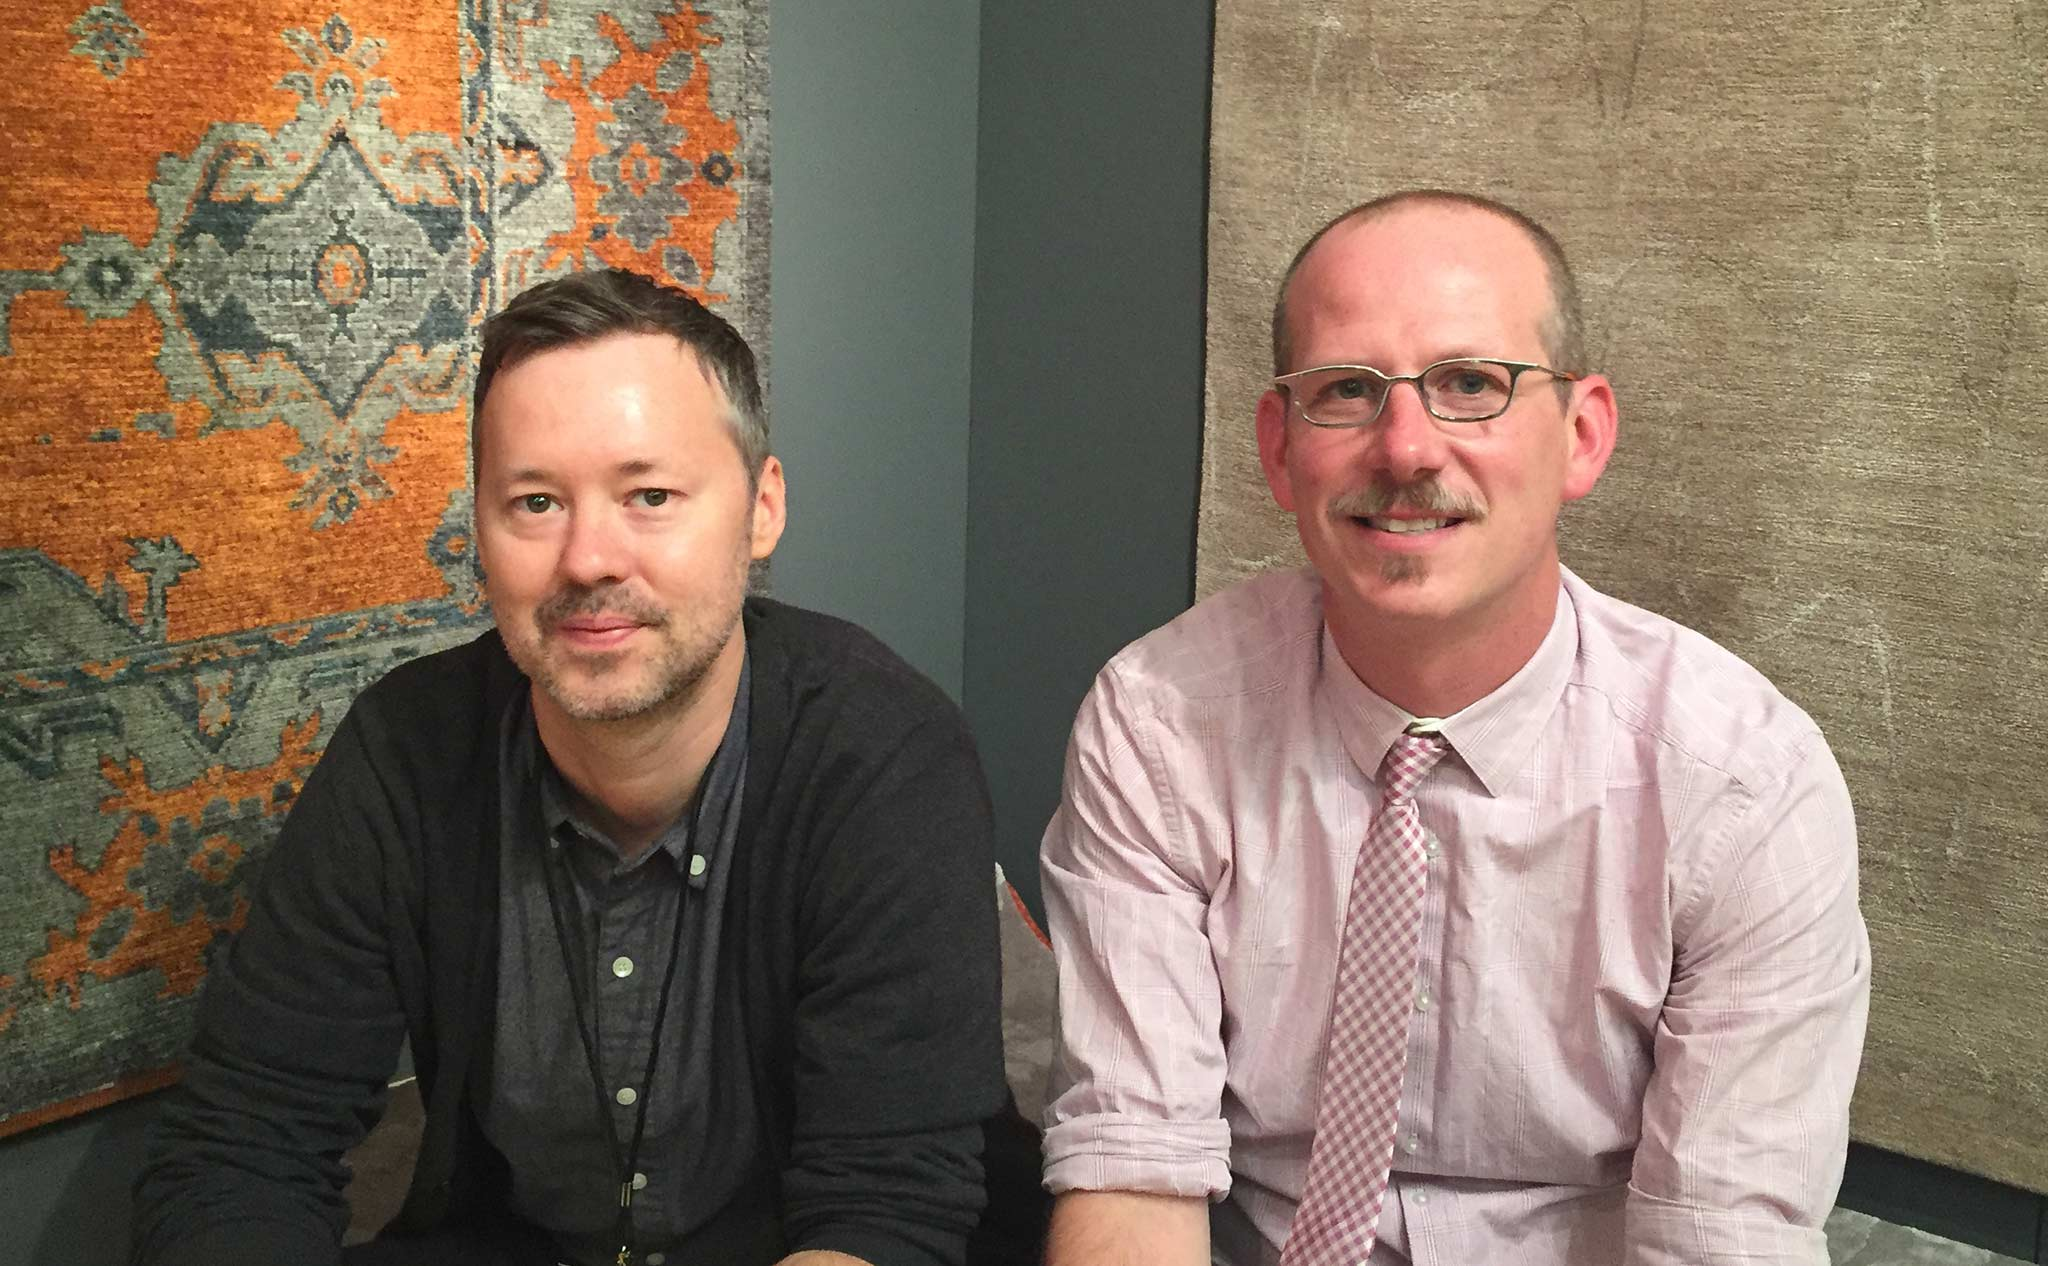 Nathan Tucker - Showroom Manager of AtelierLapchi Chicago, and Michael Christie - The Ruggist, Editor of Rug Insider shown at Lapchi during NYICS 2015.   Image courtesy of Rug Insider.